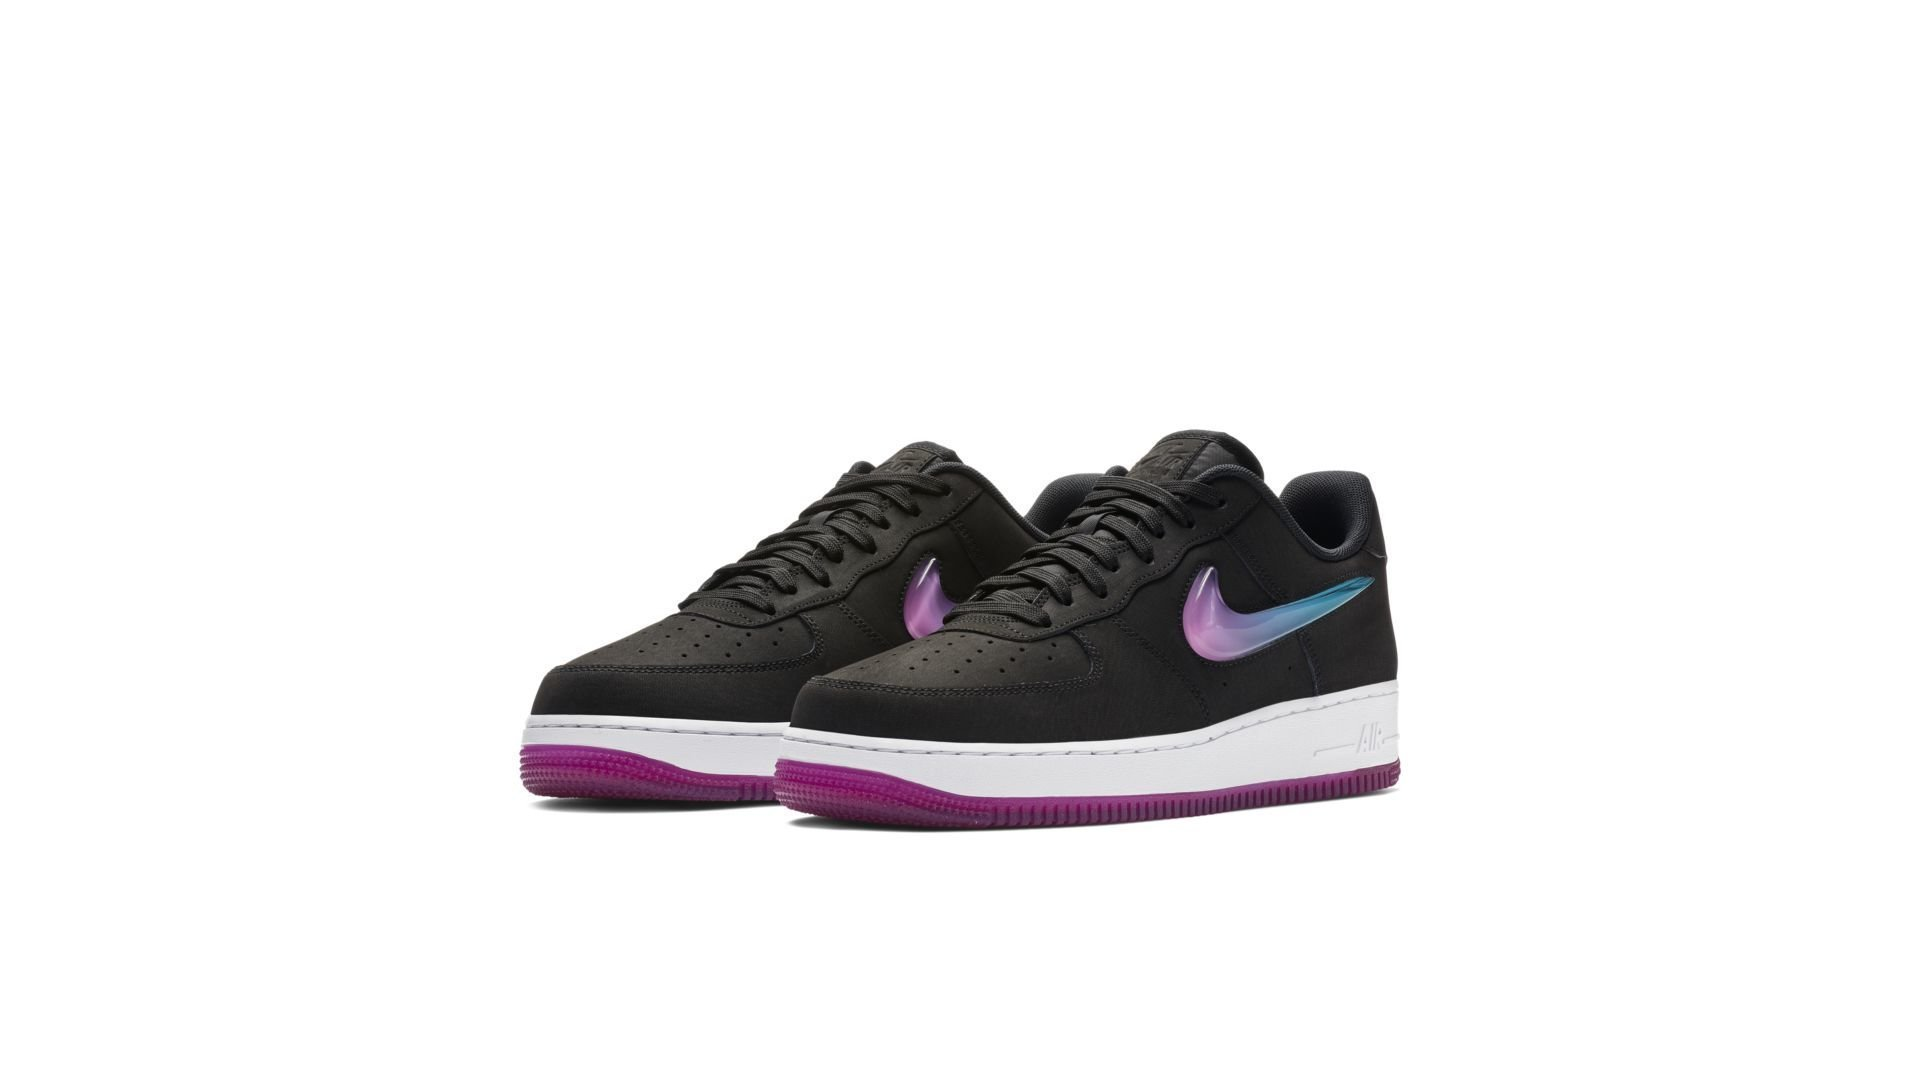 Nike Air Force 1 Low Jelly Jewel Black (AT4143 001)